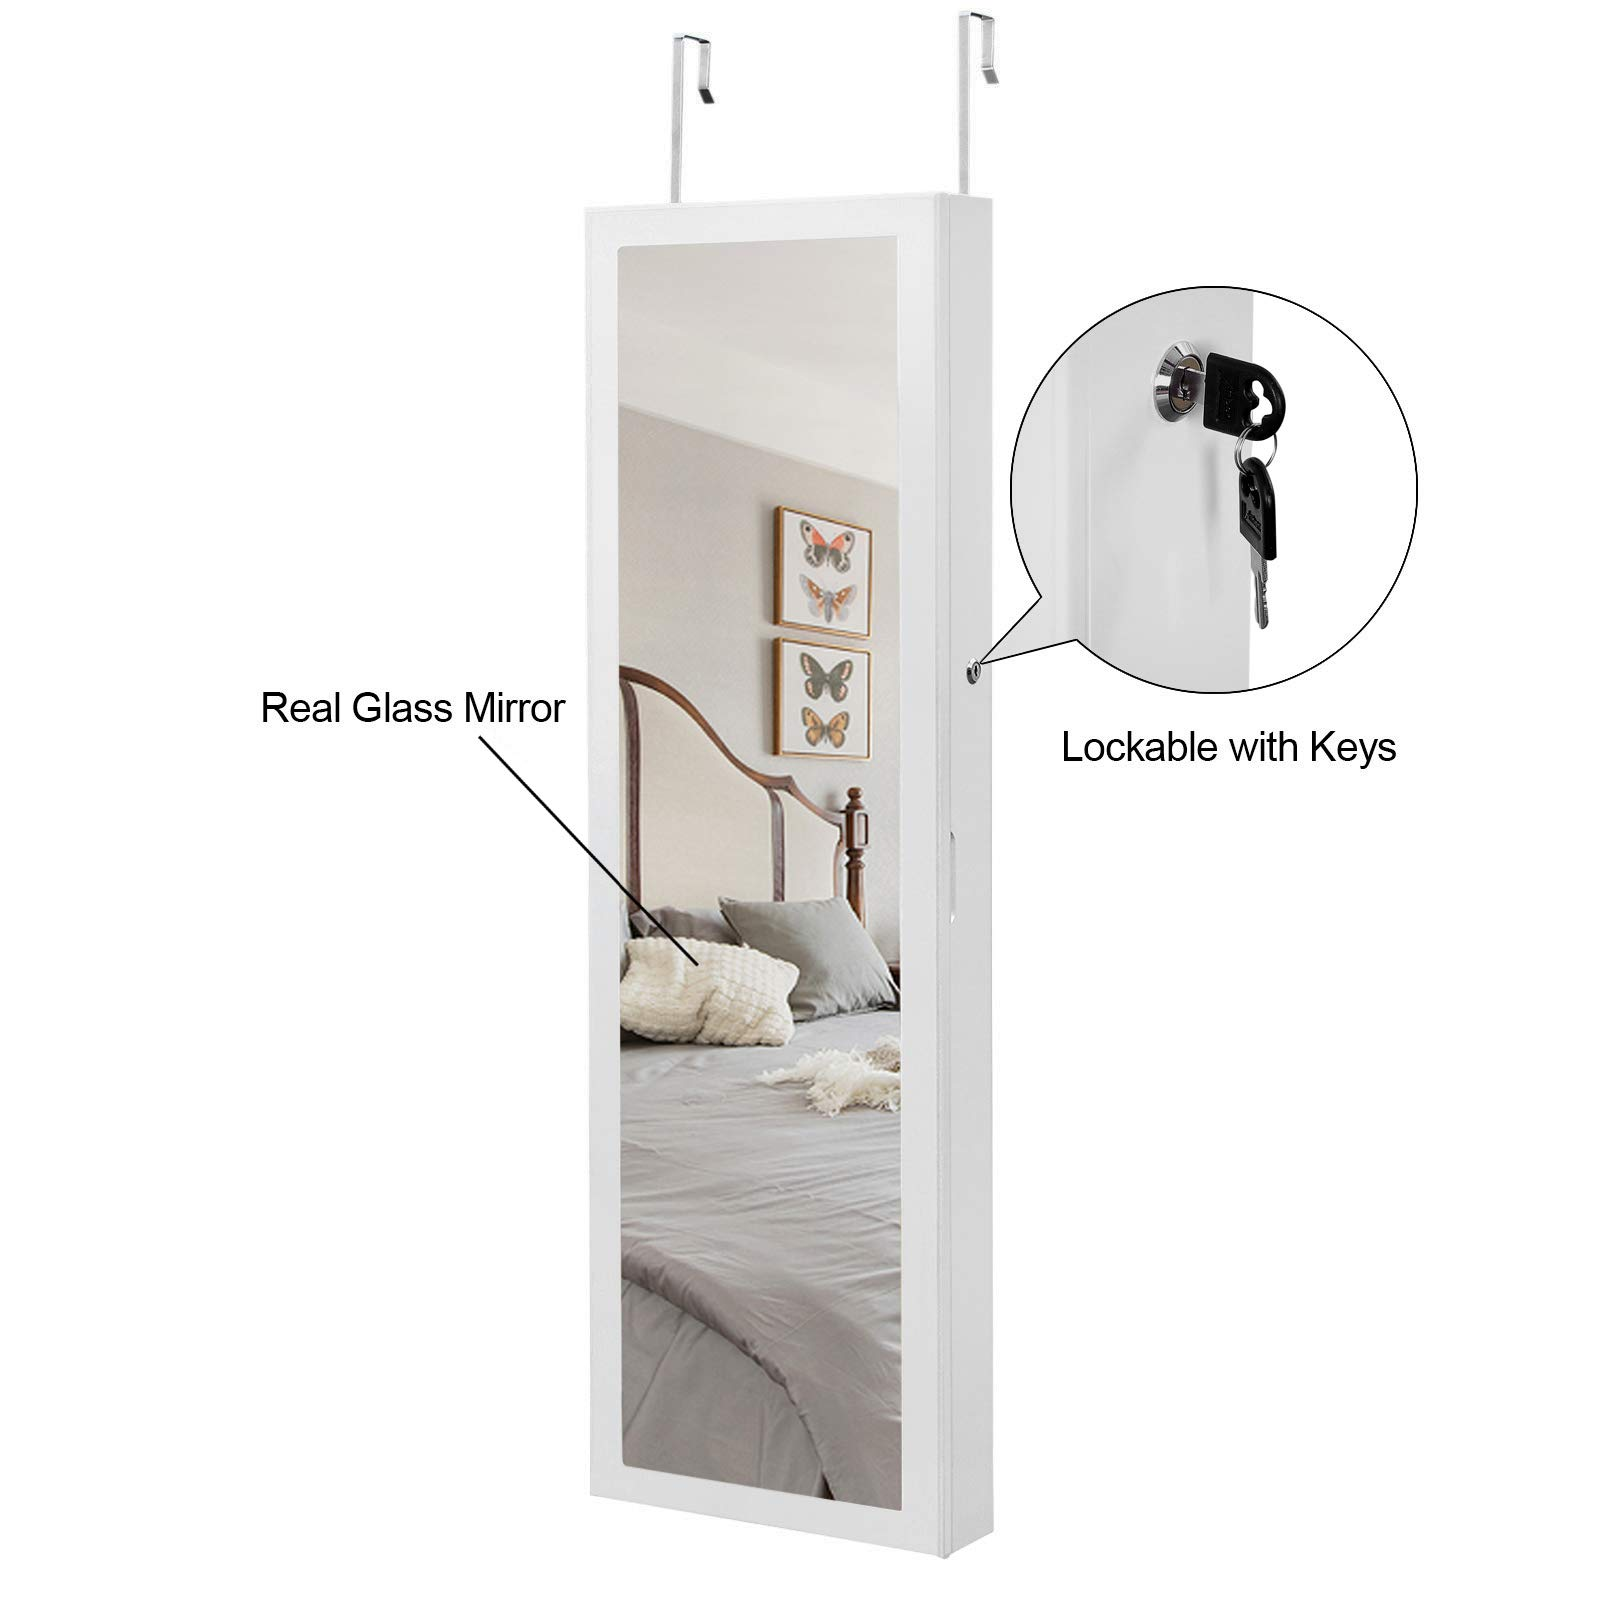 SONGMICS 6 LEDs Mirror Jewelry Cabinet Lockable Wall/Door Mounted Jewelry Armoire Organizer with Mirror, 2 Drawers, Pure White UJJC93W by SONGMICS (Image #7)